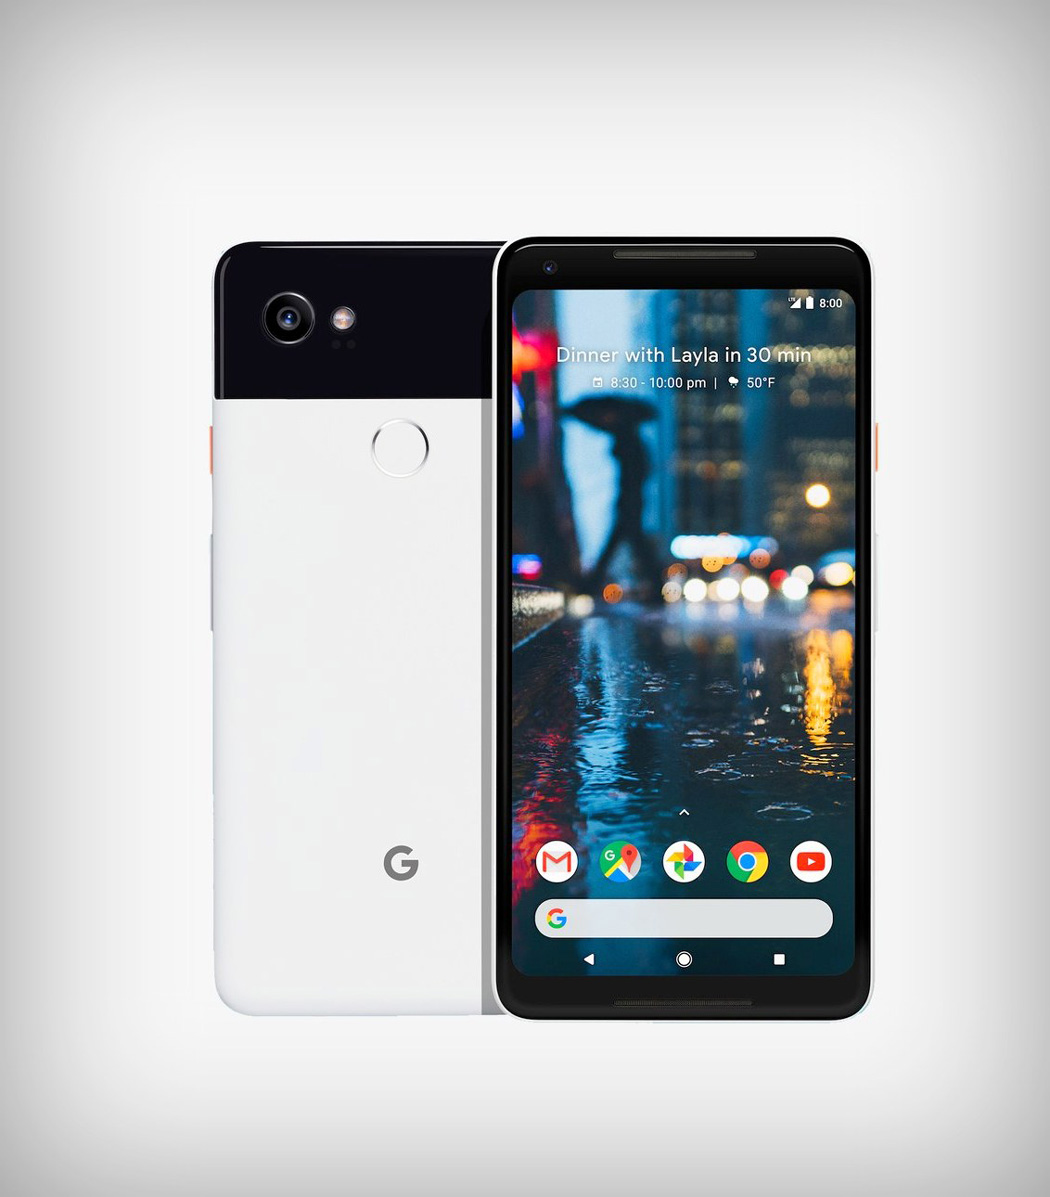 Google Pixel 2 & Google Pixel 2 XL Leaked Photos Leave Fans Disappointed